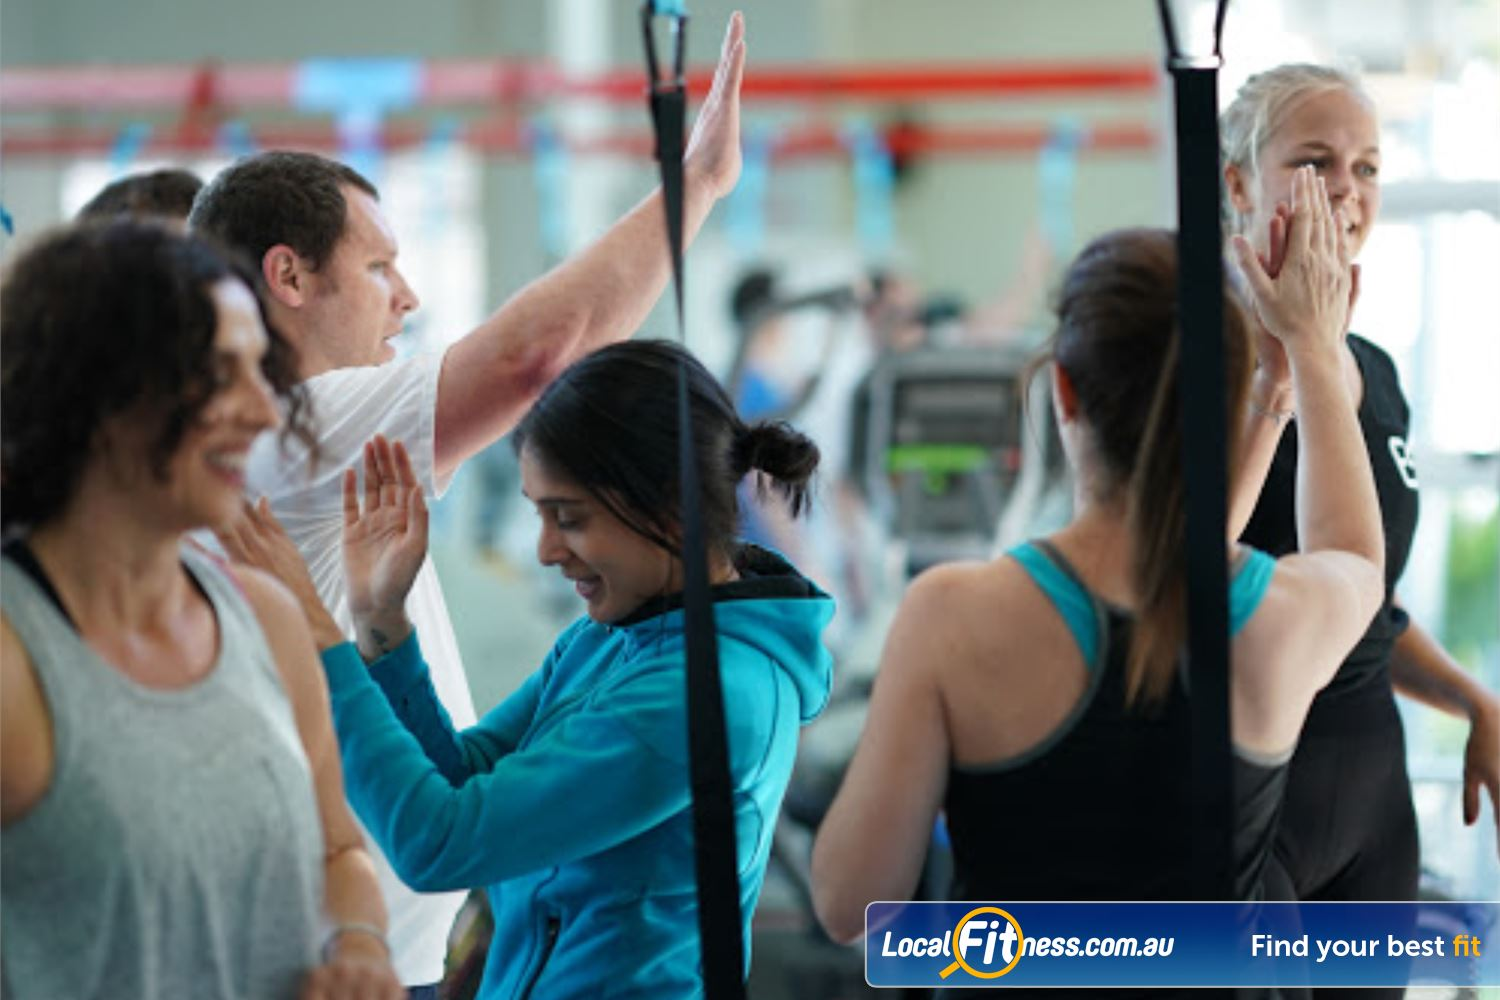 North Ryde Fitness & Aquatic North Ryde High 5's all round after you complete our challenging HIIT workouts.